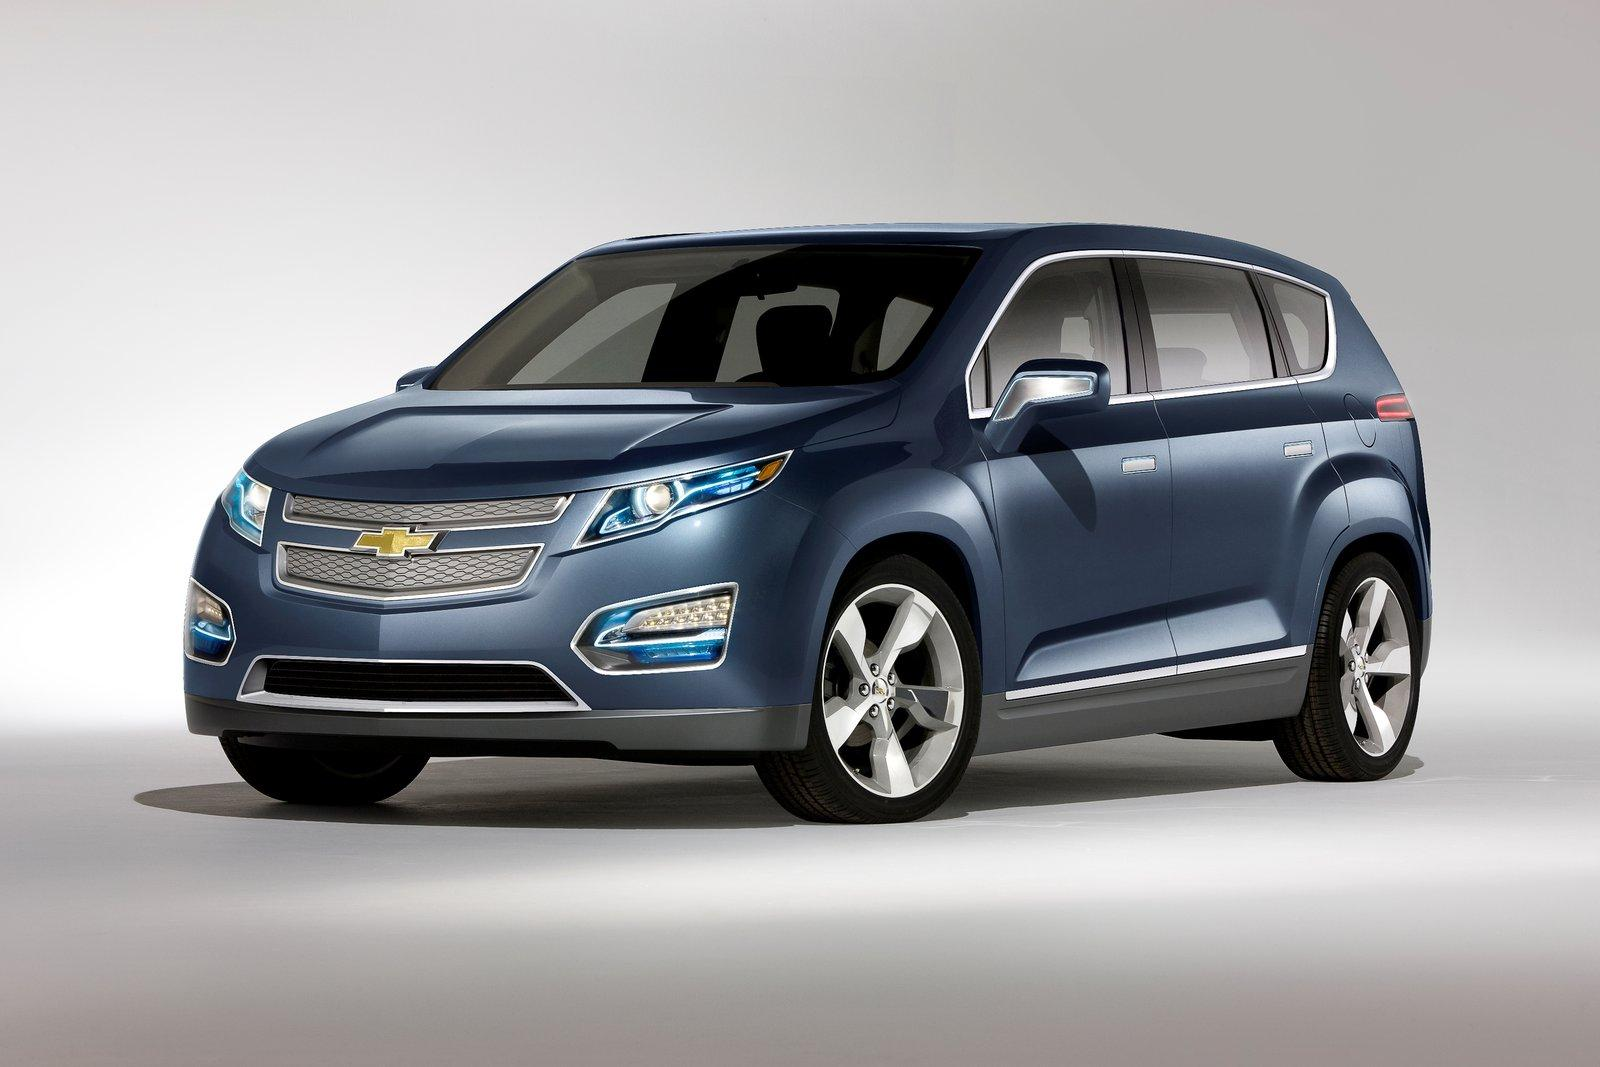 GM Plug-In Hybrid Crossover (MPV5) Going to 2012 NAIAS